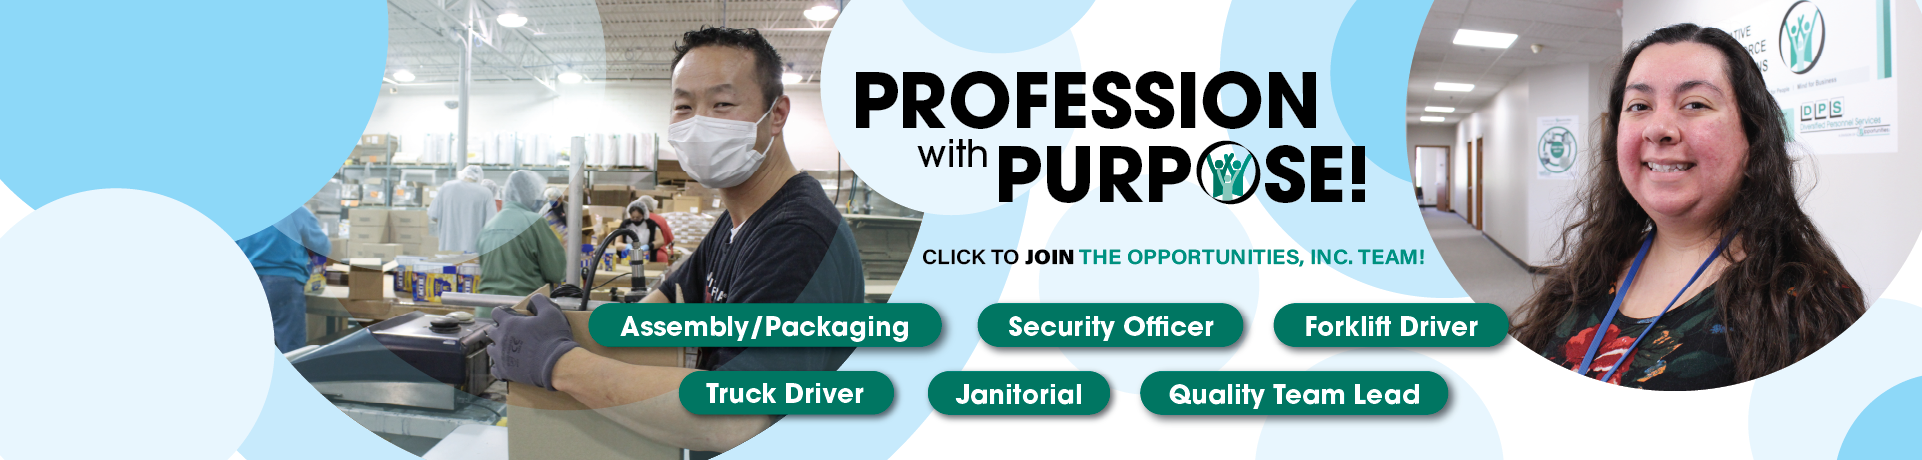 A_Profession_Frontpage_Banner_4-22